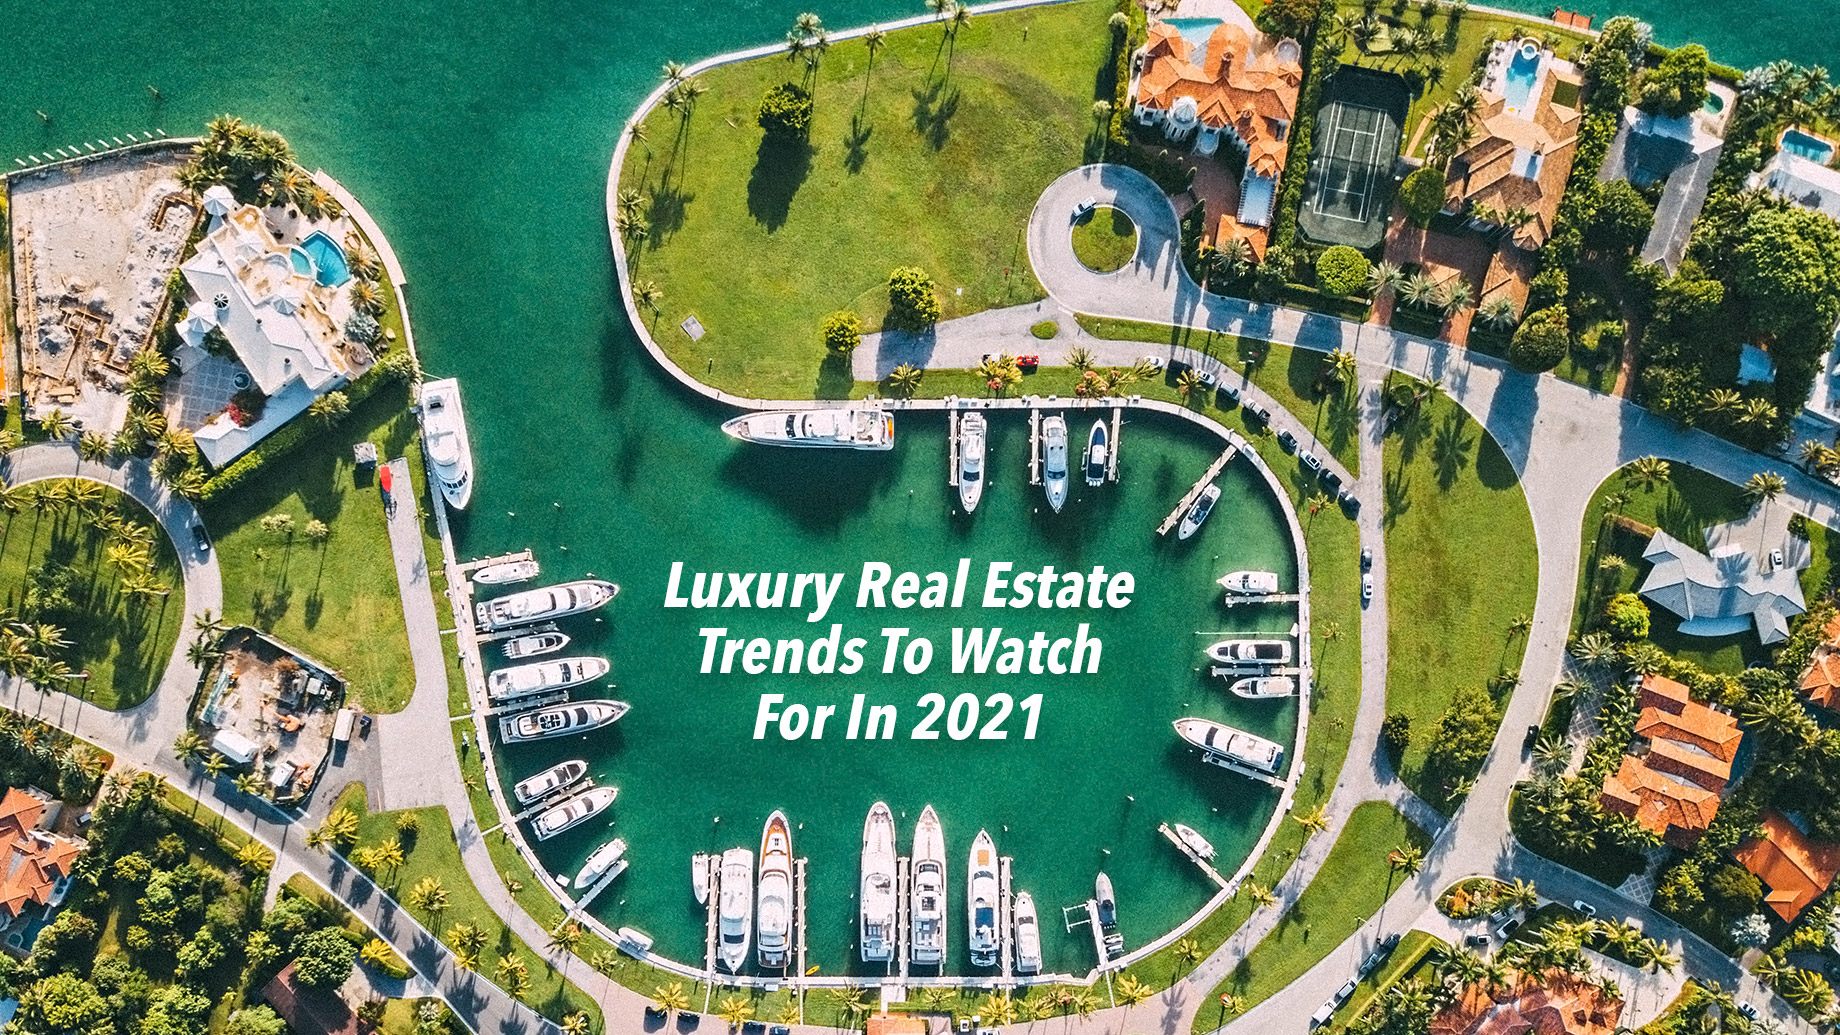 Luxury Real Estate Trends To Watch For In 2021